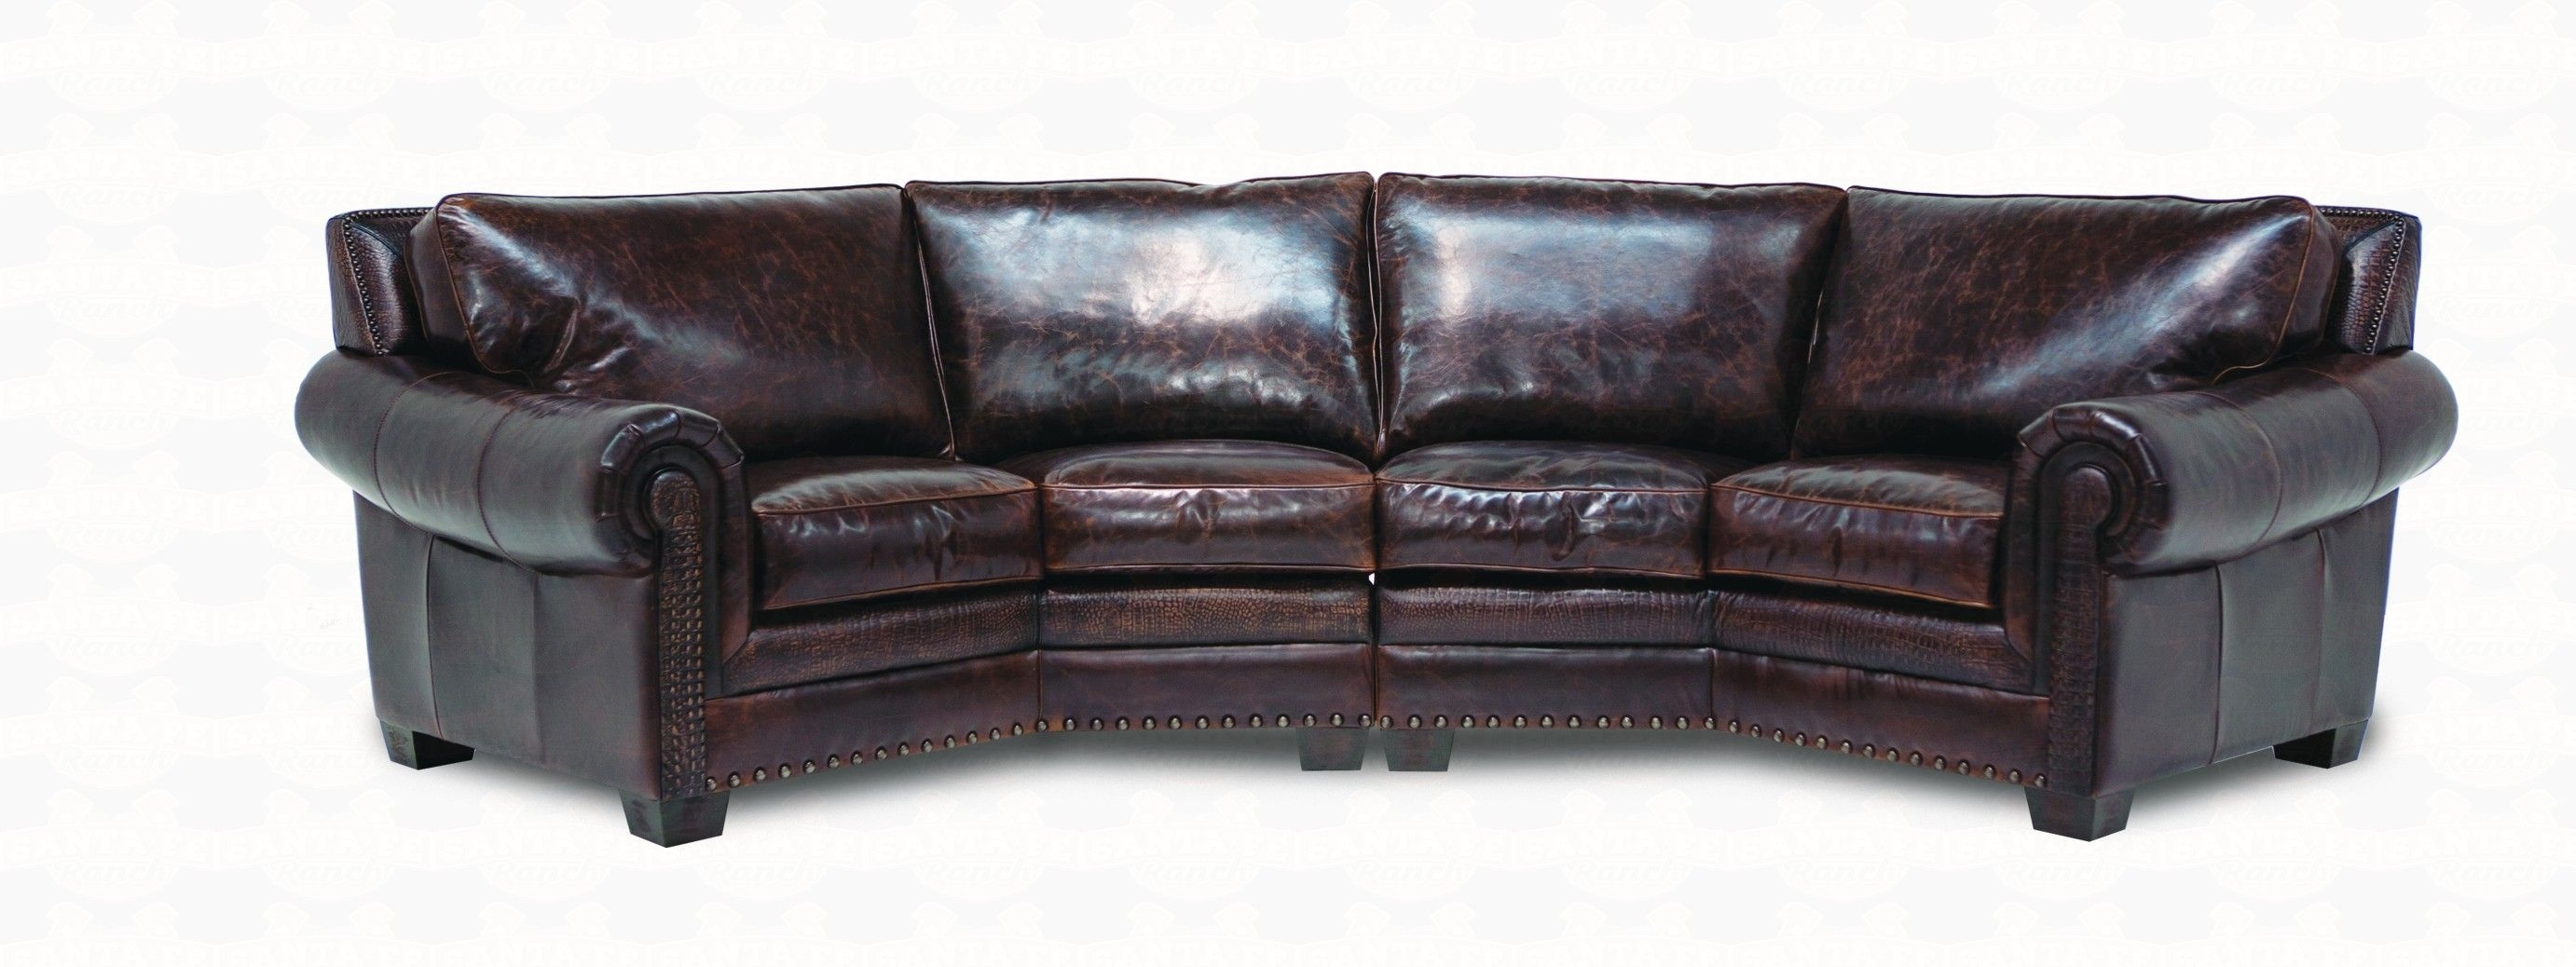 Nice Craigslist Leather Sofa , Beautiful Craigslist Leather Sofa 77 Throughout Craigslist Leather Sofas (View 8 of 10)